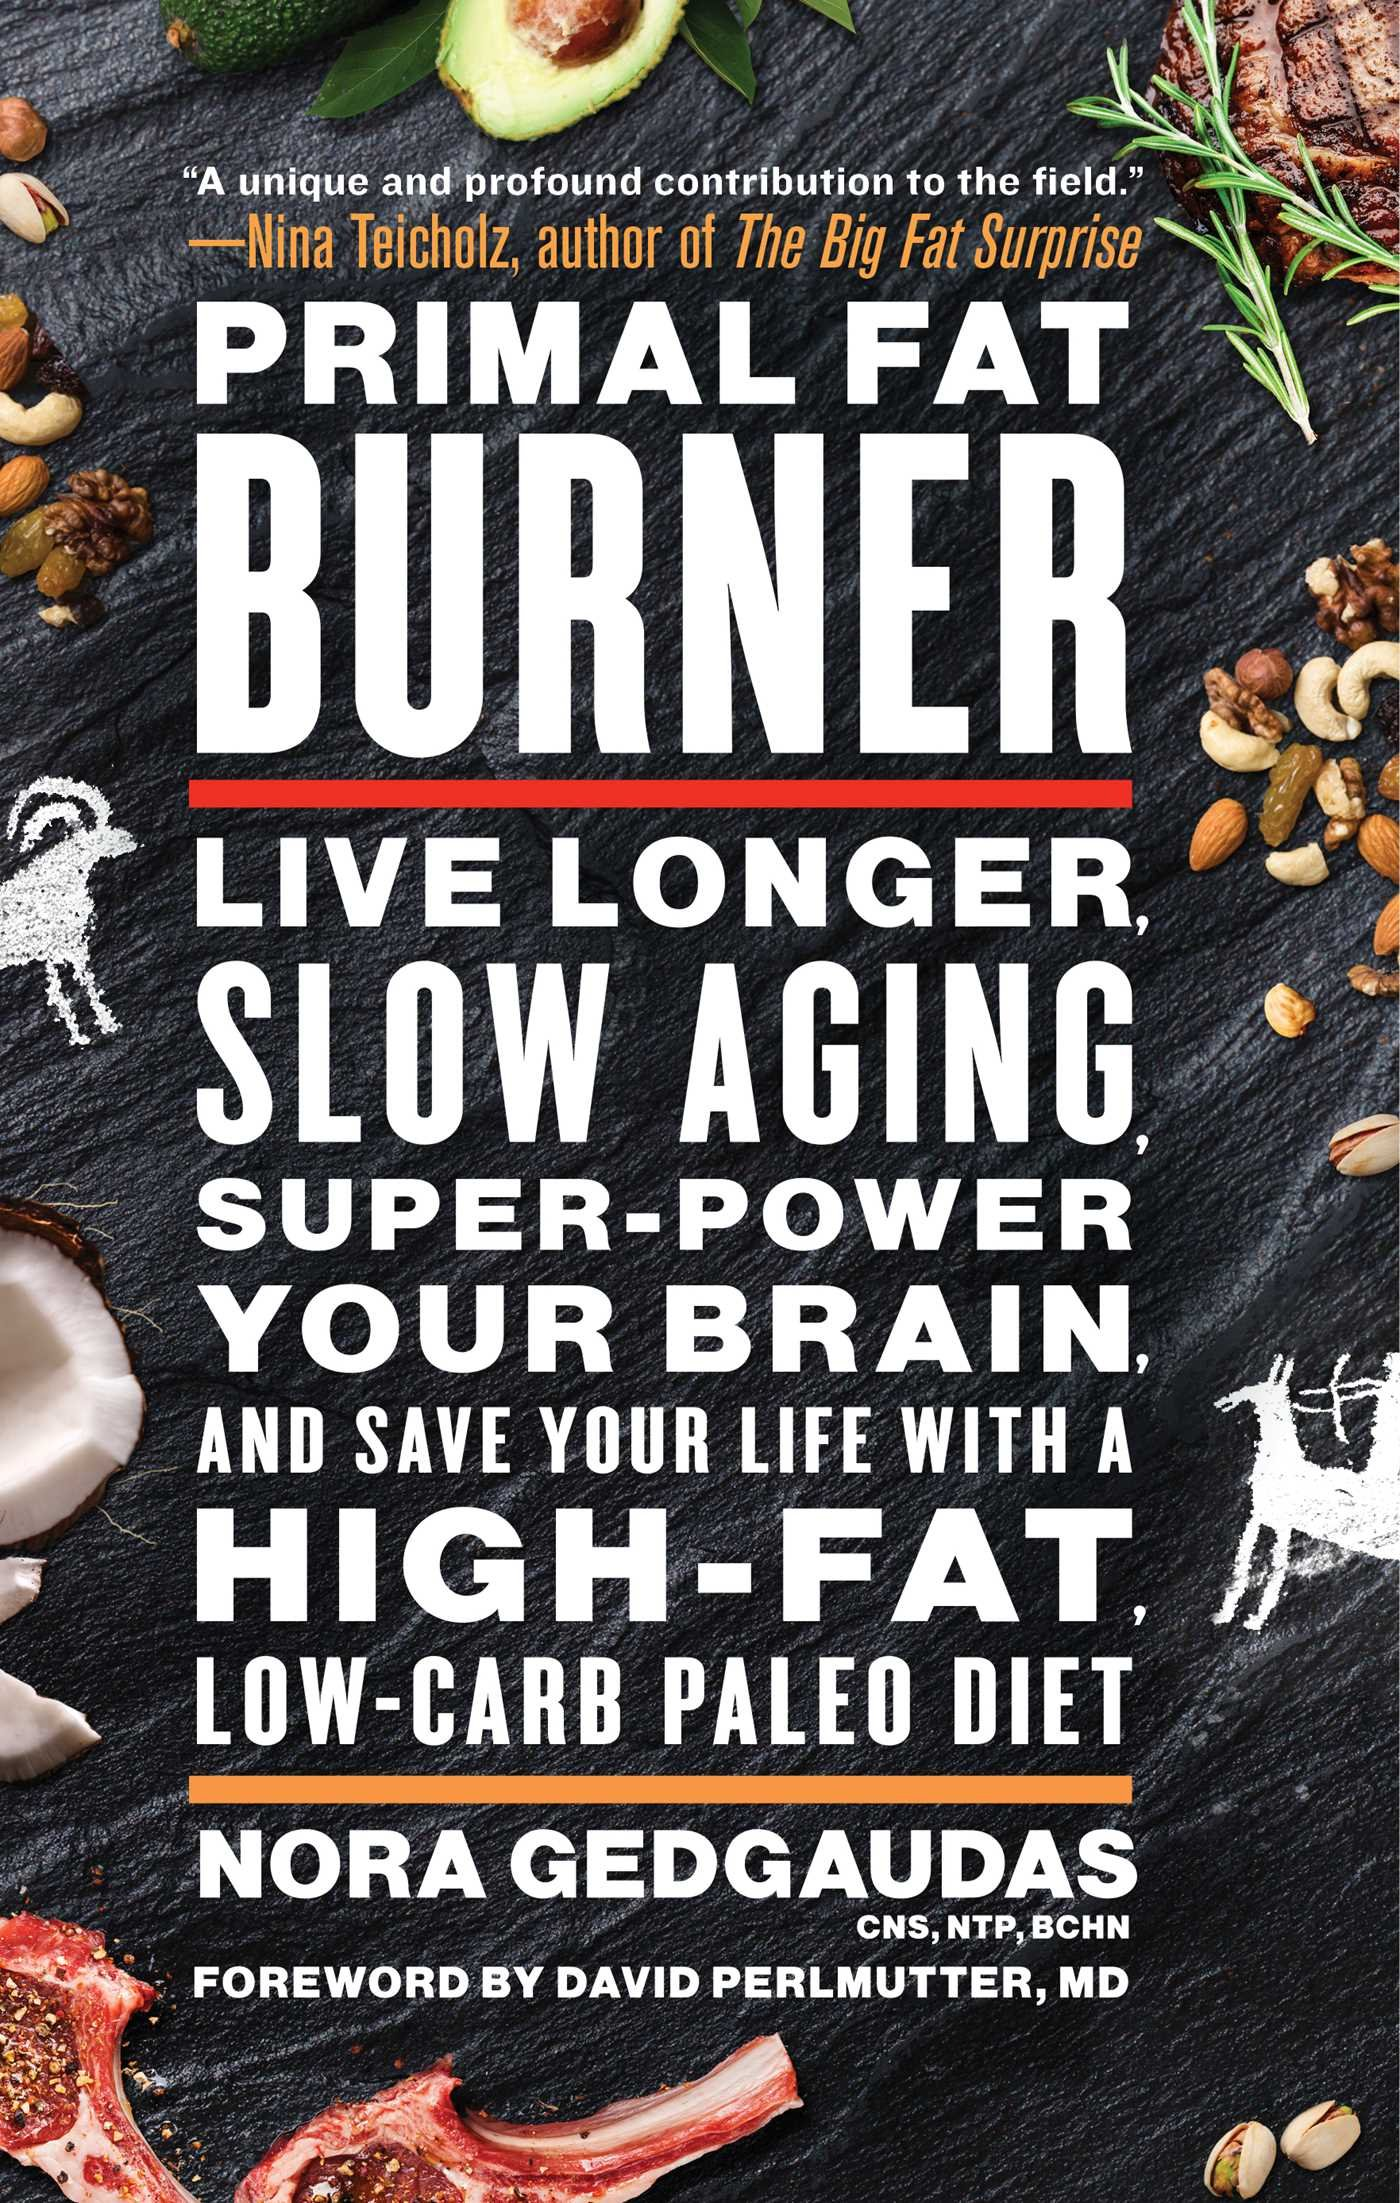 Primal fat burner live longer slow aging super power your brain primal fat burner live longer slow aging super power your brain and save your life with a high fat low carb paleo diet nora gedgaudas cns ntp bchn malvernweather